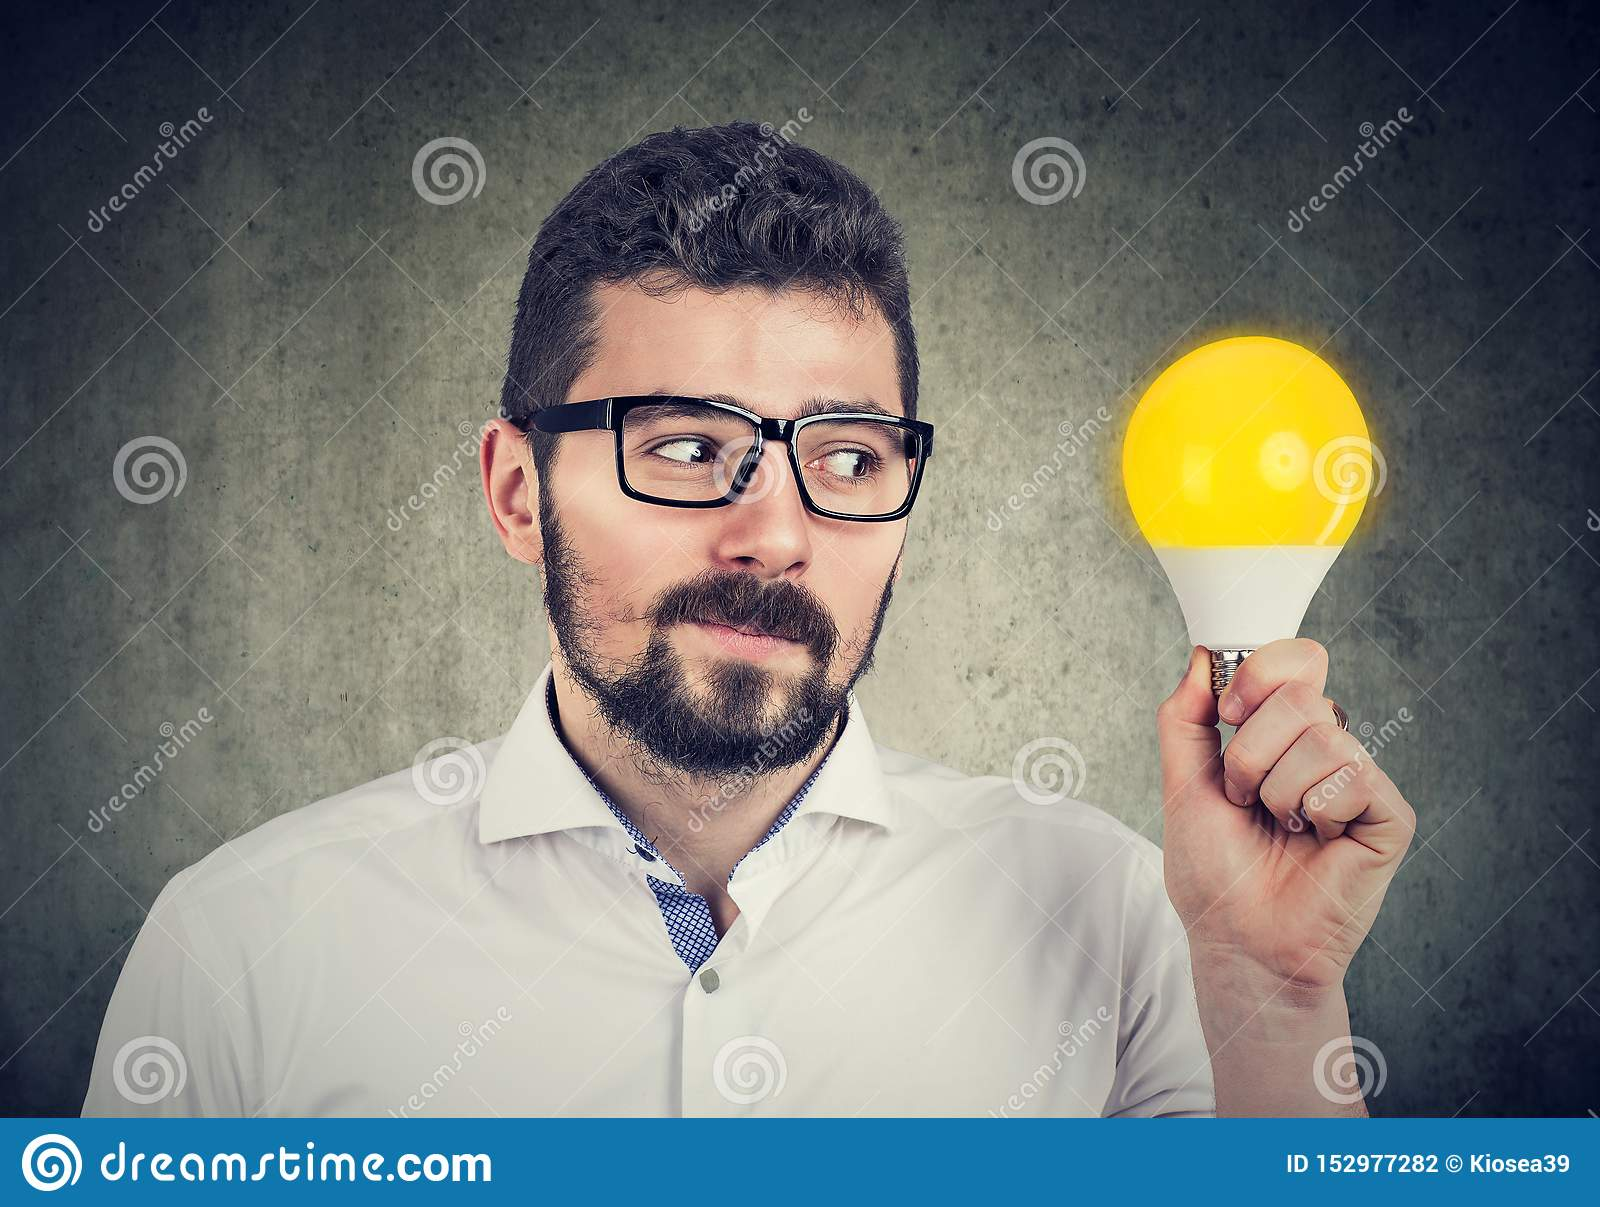 Curious man holding looking at bright light bulb